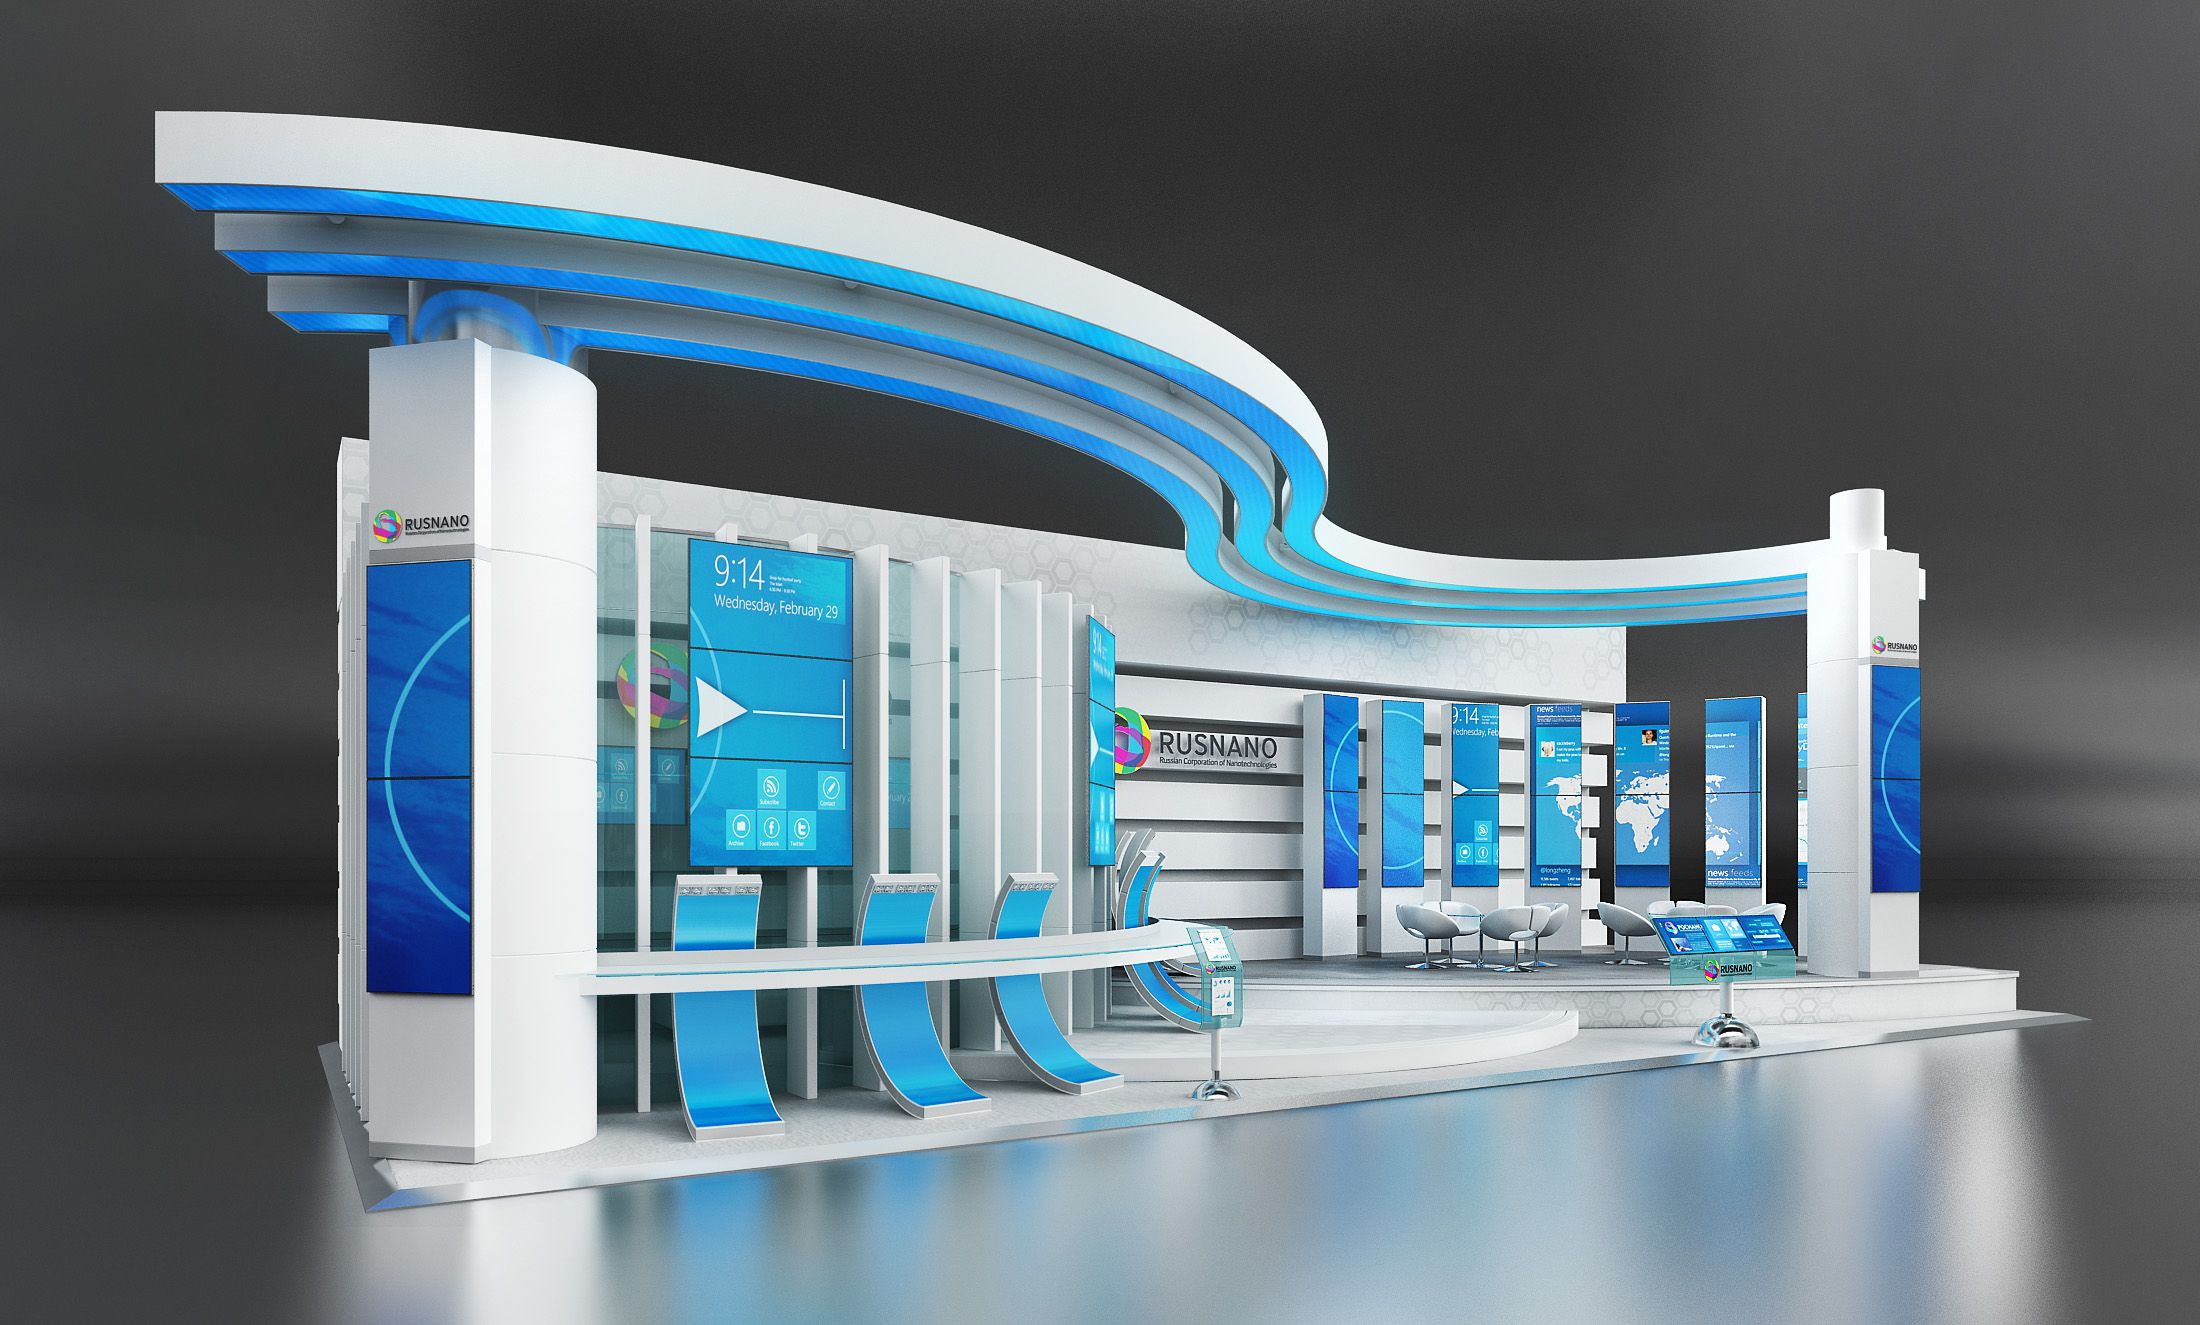 Exhibition Stand Design Concepts : One of the design concept for rusnano exhibition stand